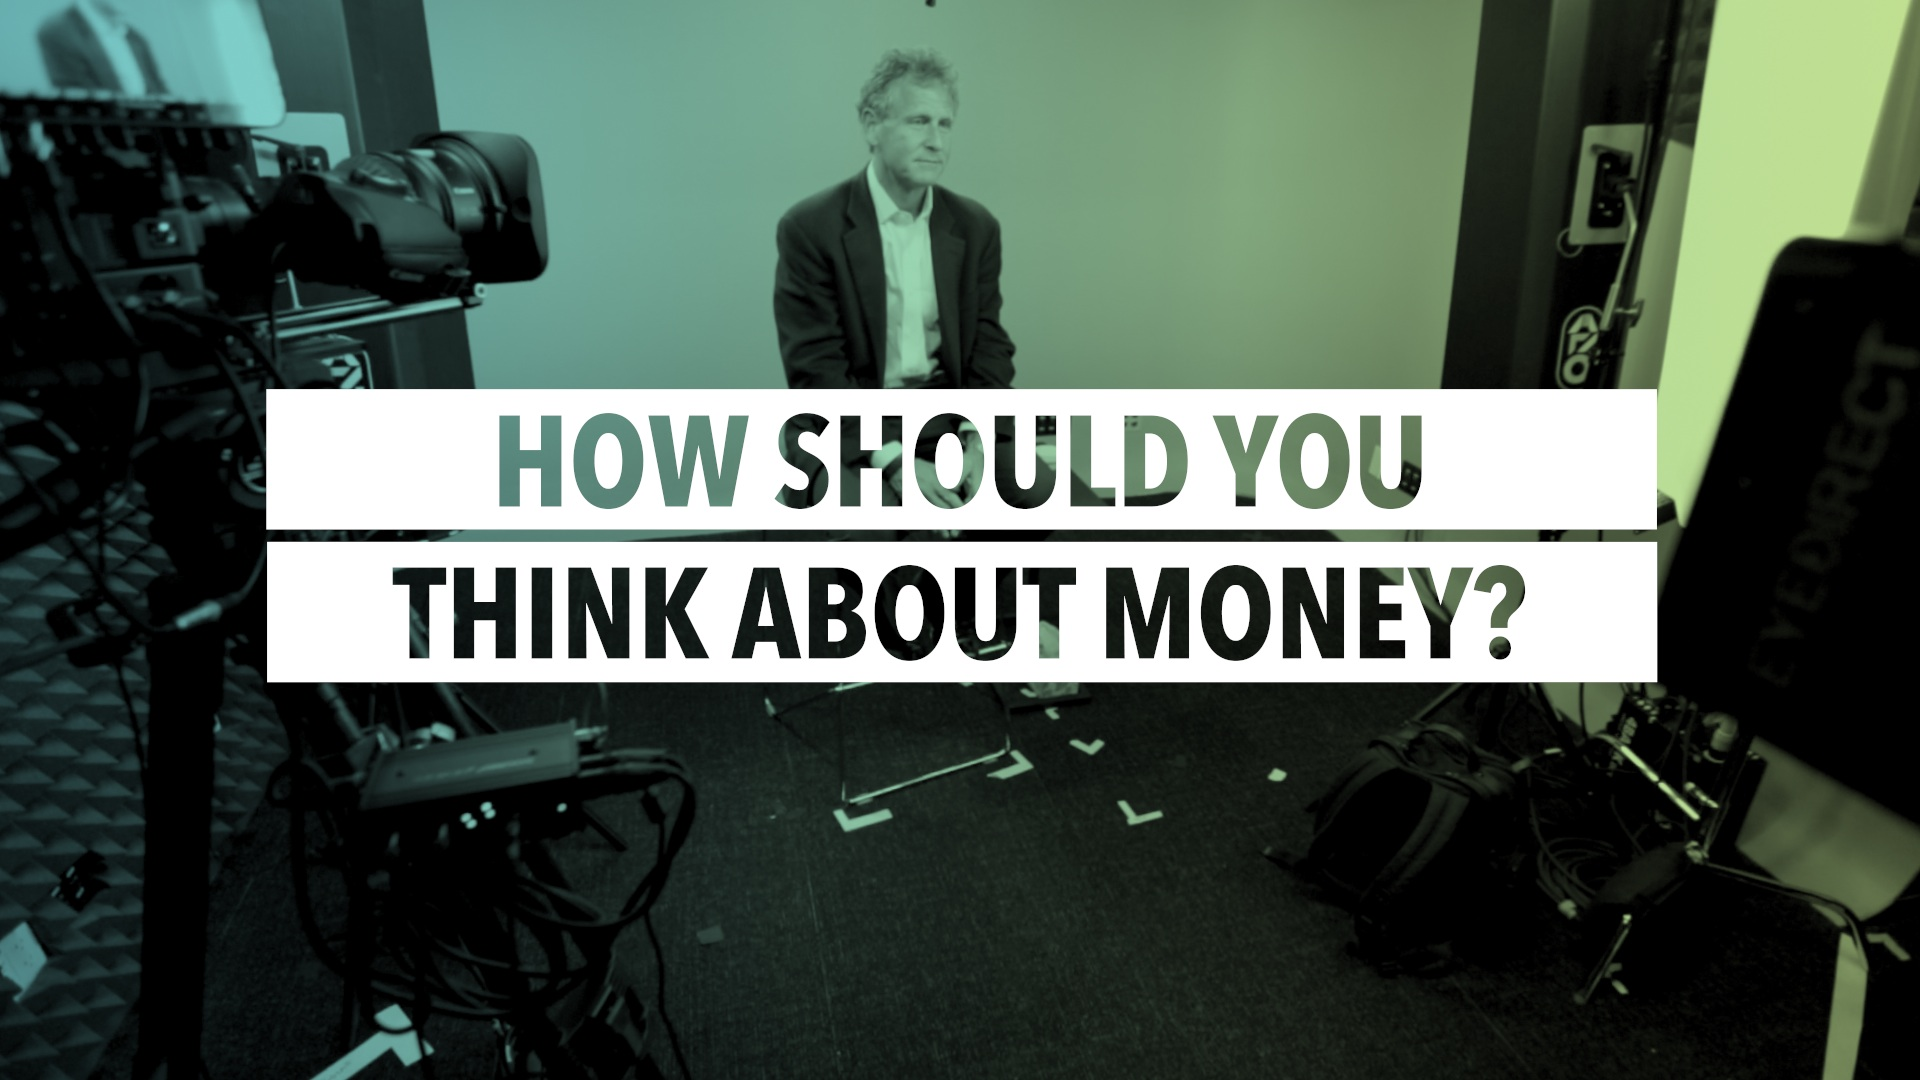 Money, job satisfaction, and lifestyle: How Should You Think About Money?